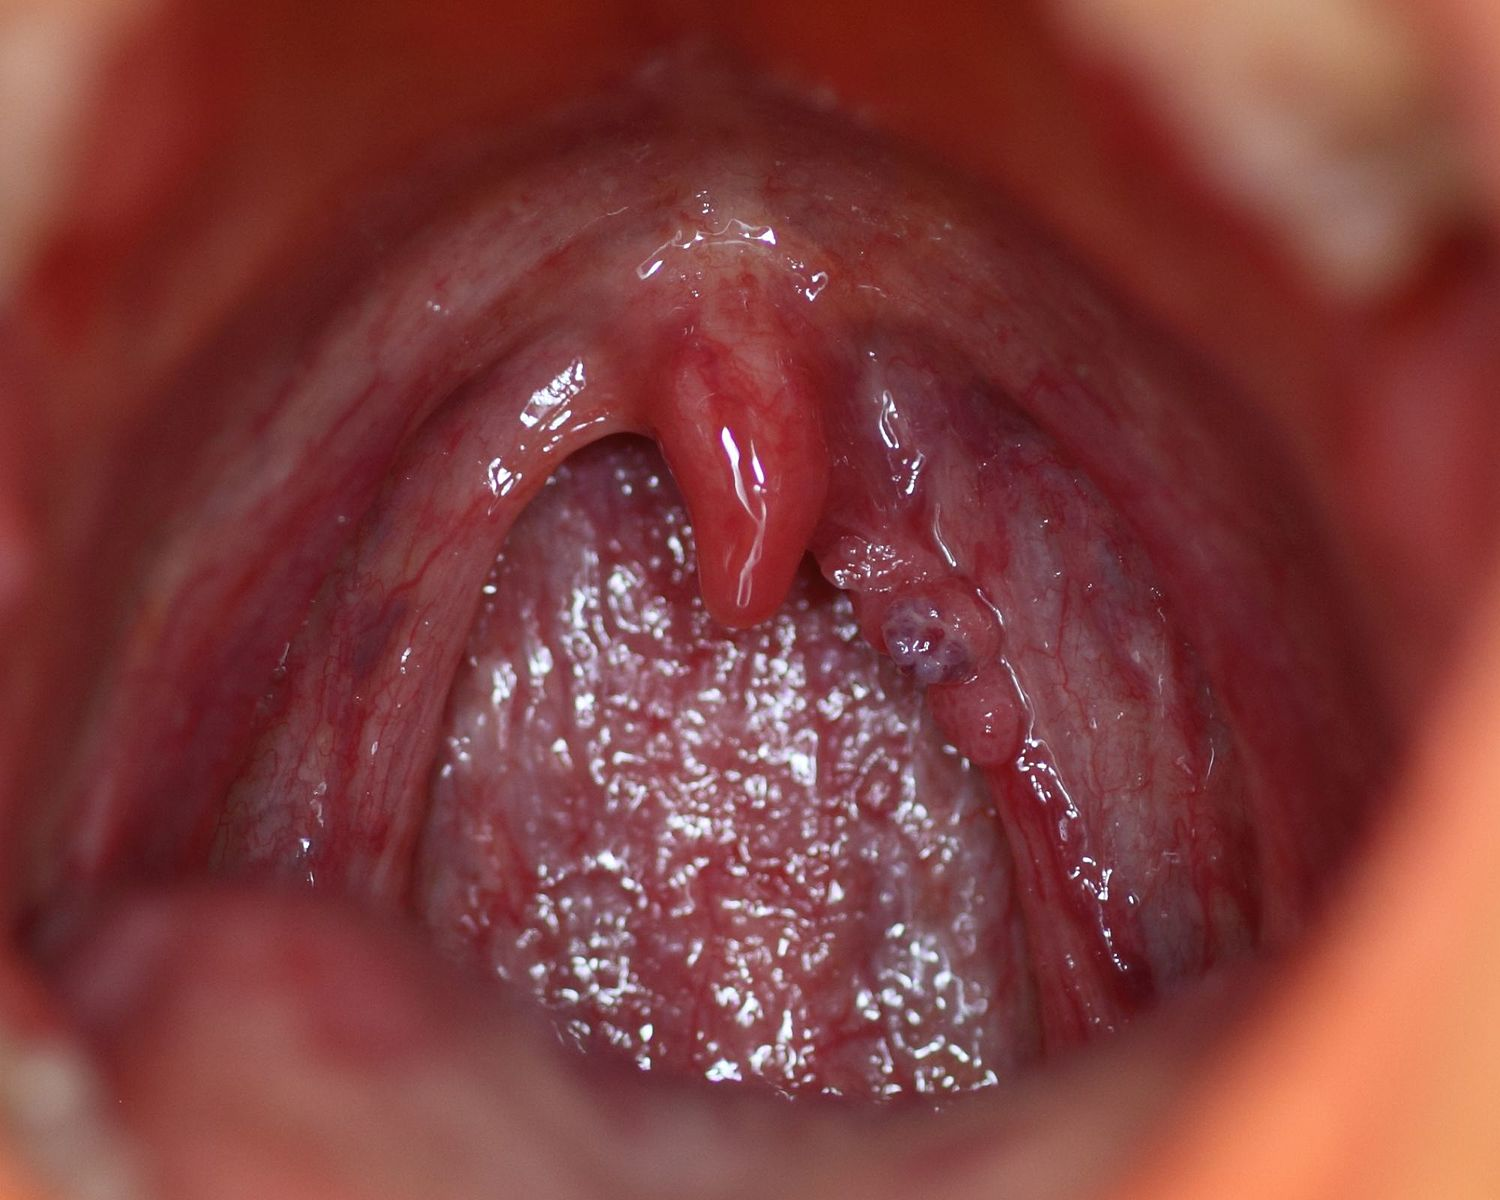 hpv mouth infection pictures